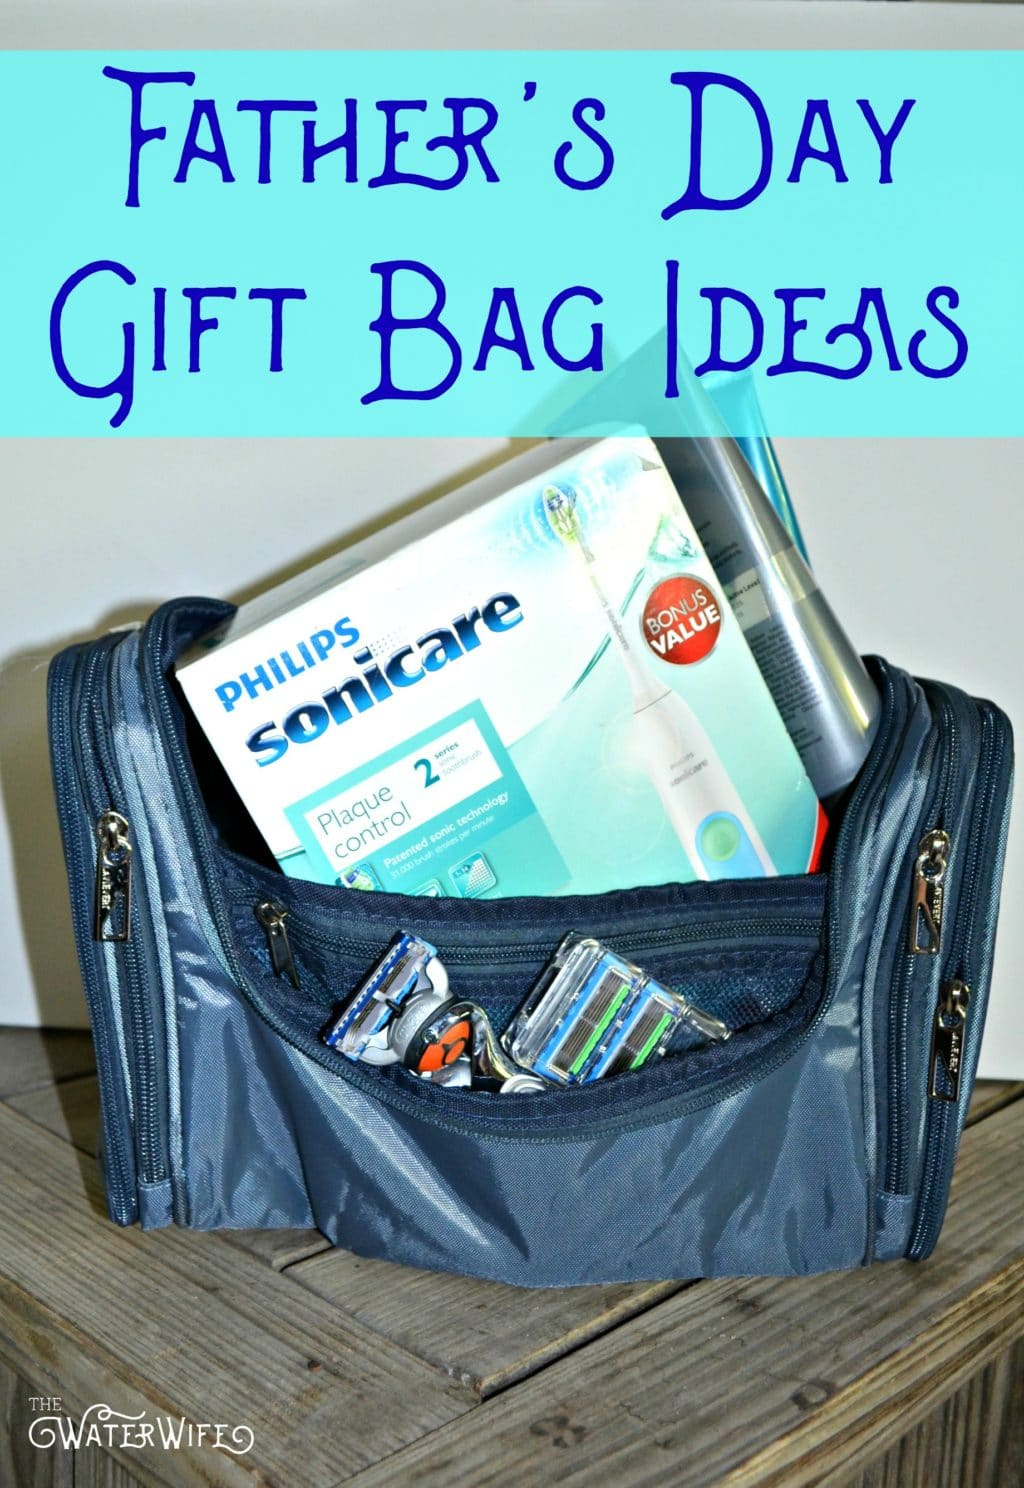 The perfect Father's Day gift bag ideas!! Treat dad right this summer!